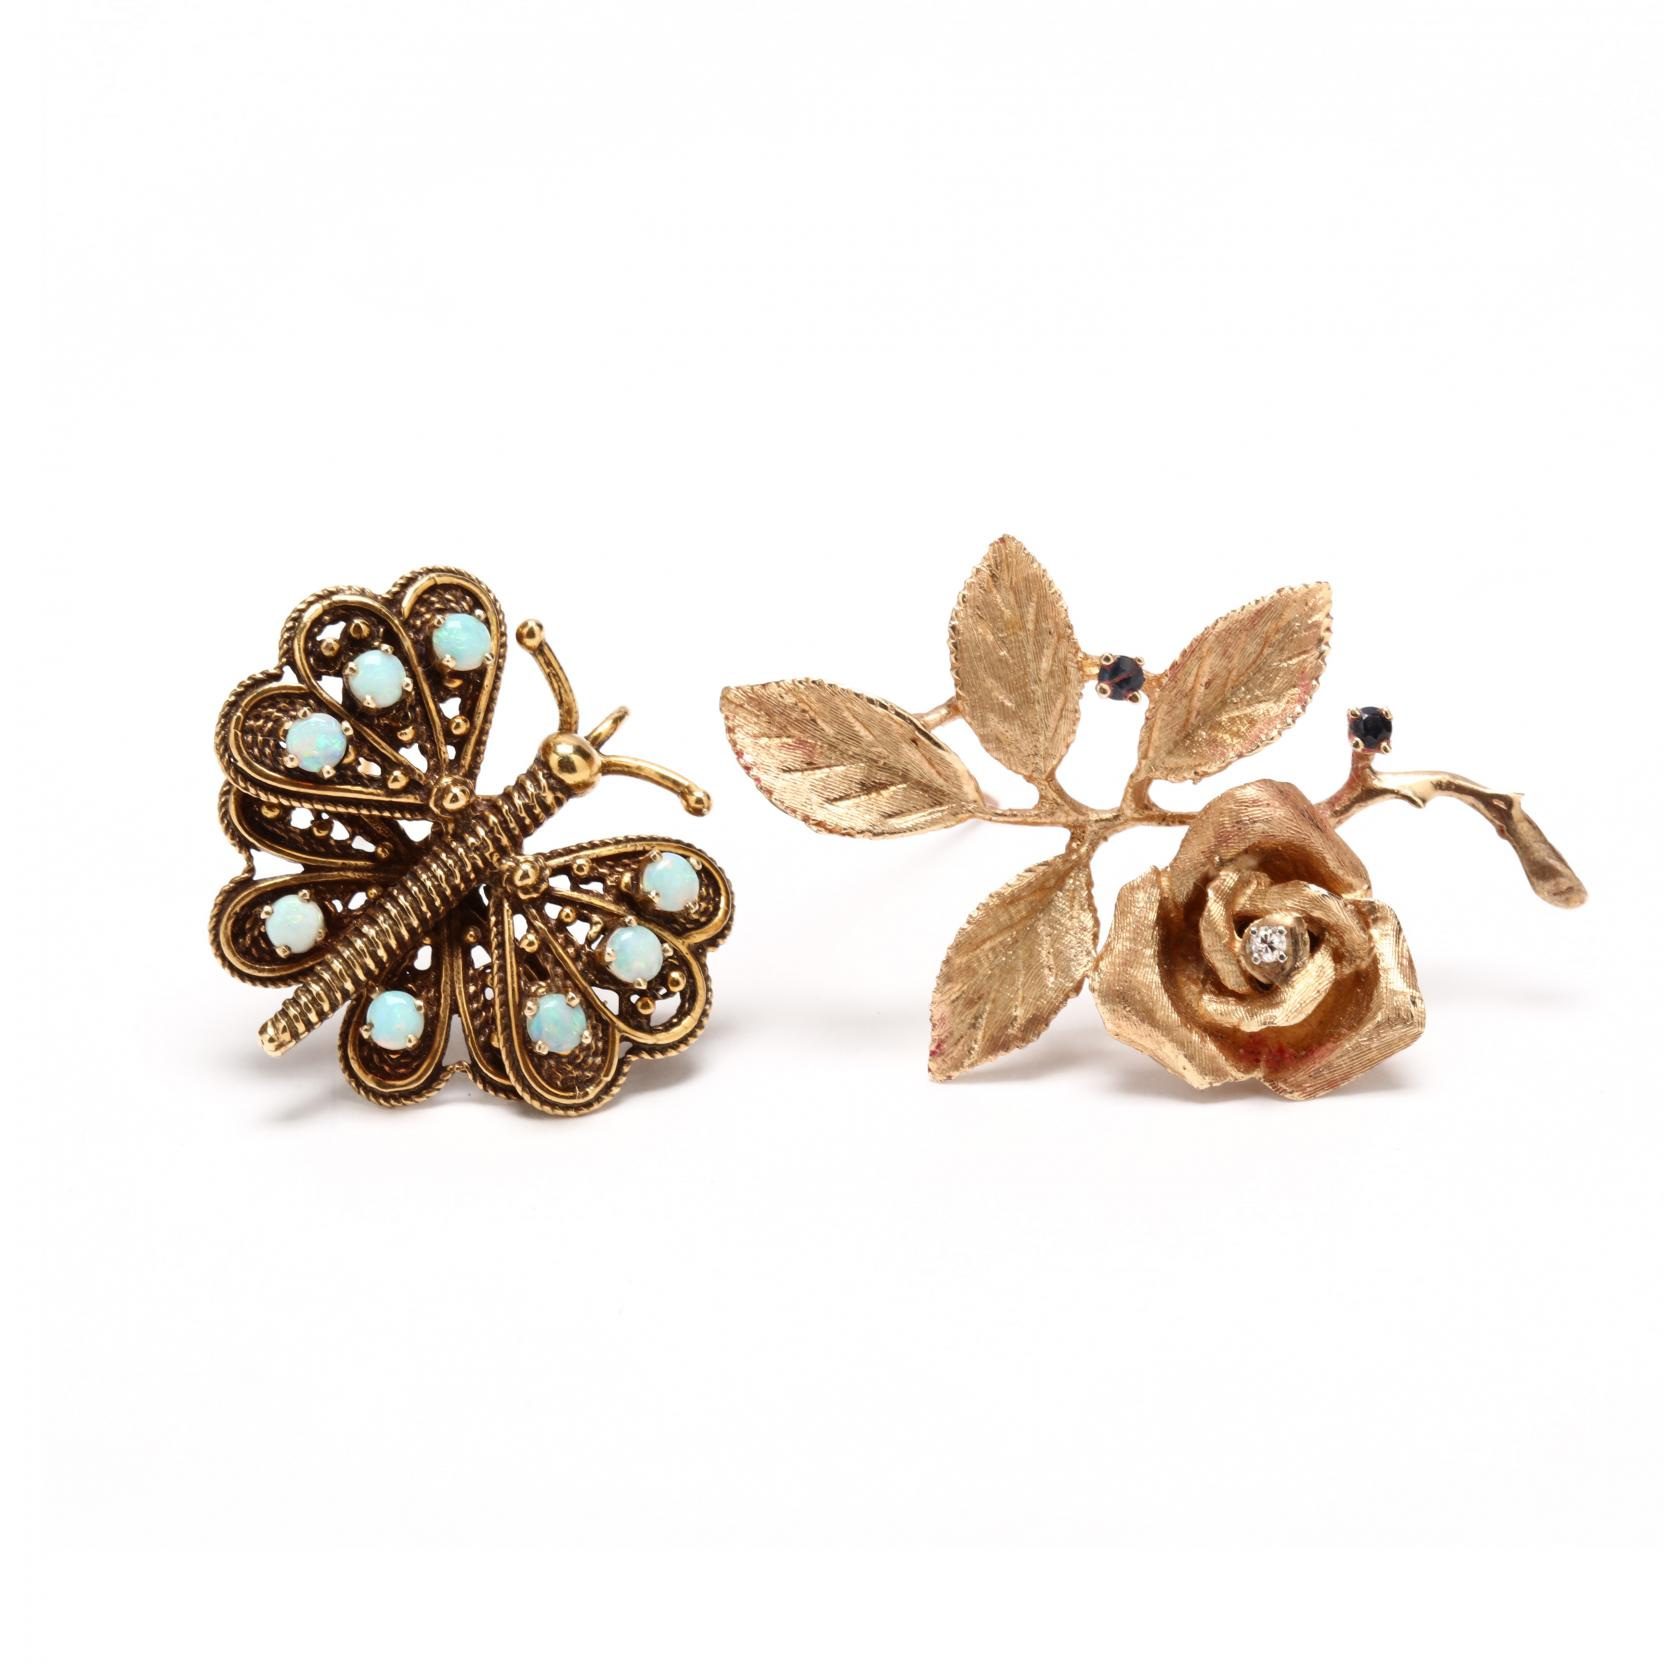 two-14kt-and-gem-set-brooches